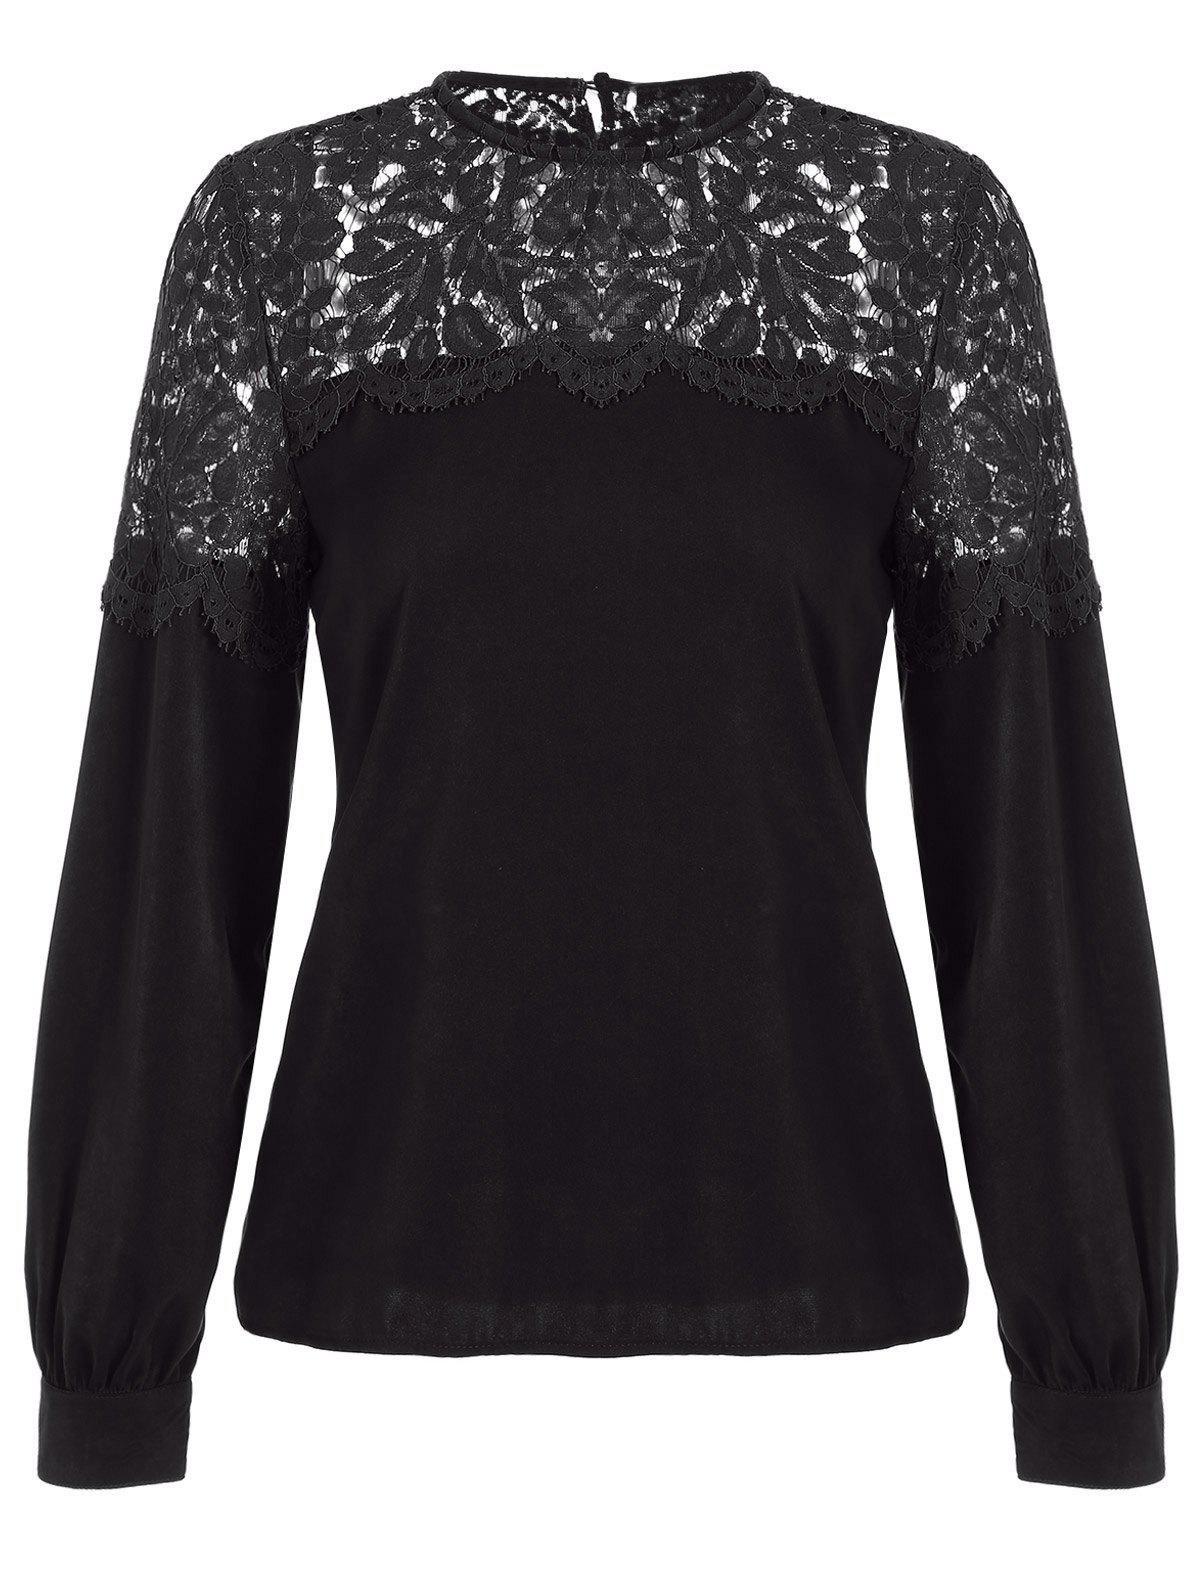 Loose Cut Out Lace Spliced Blouse - BLACK XL